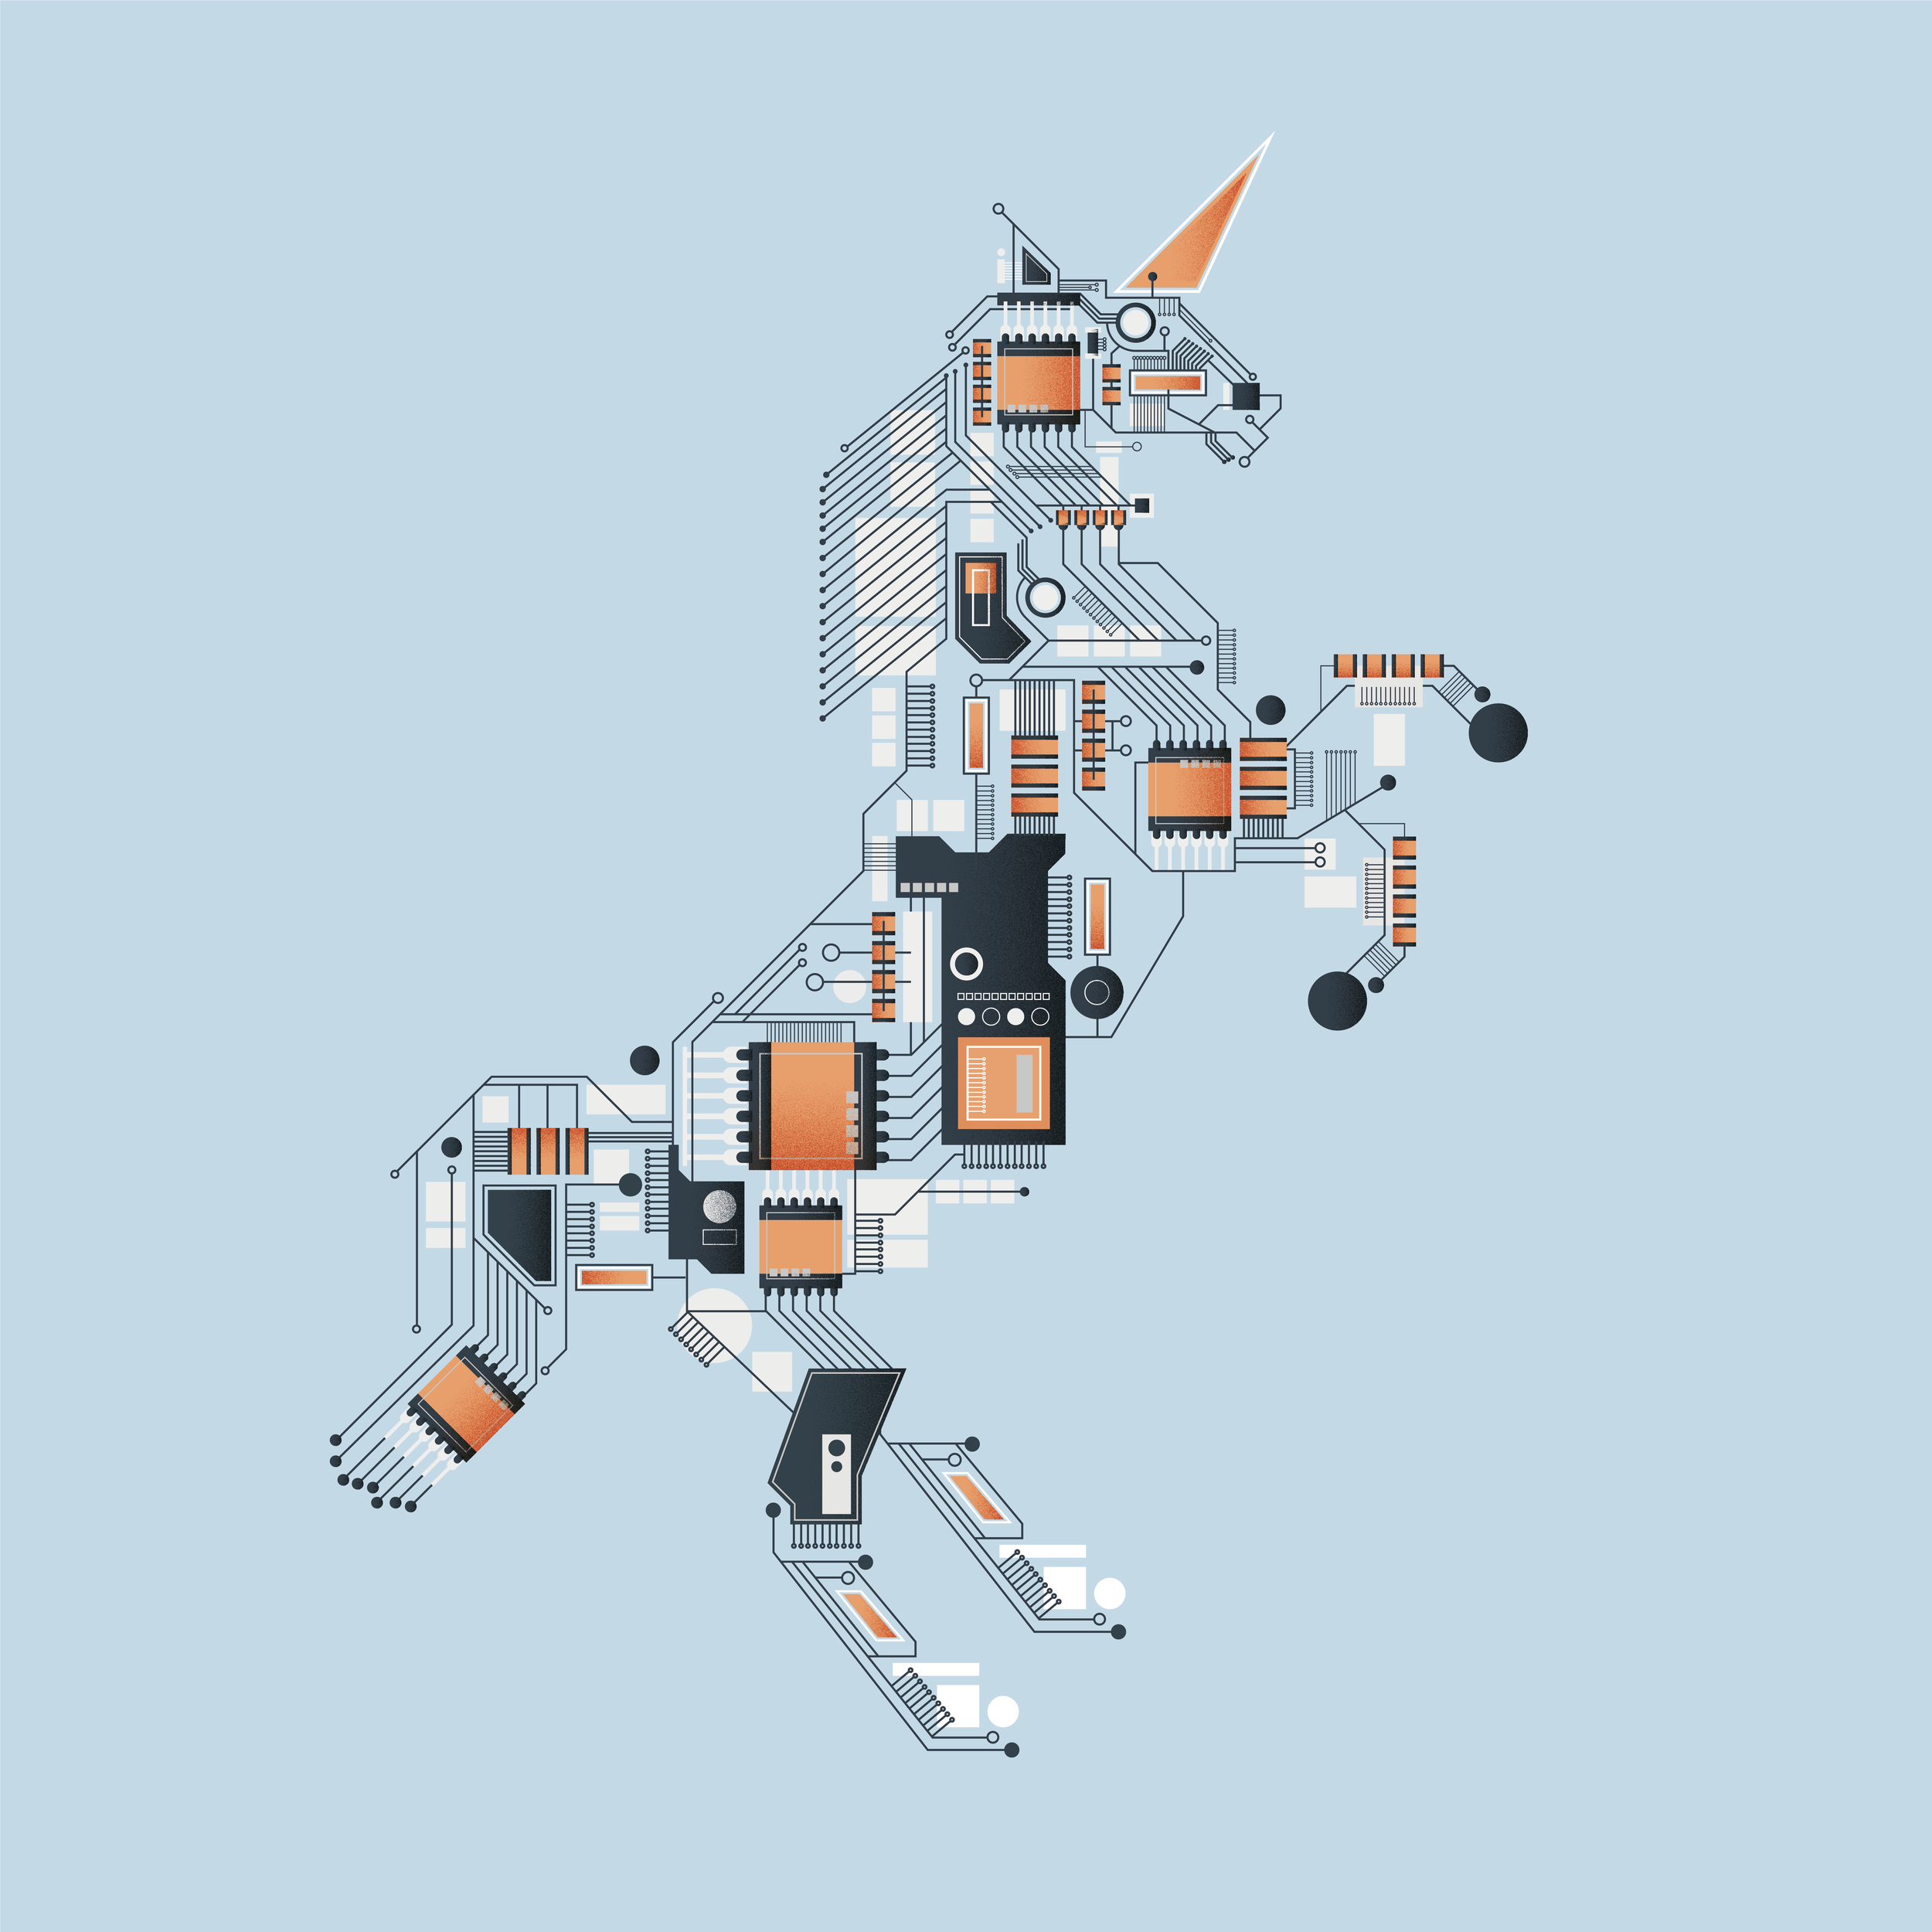 unicorn-01.png